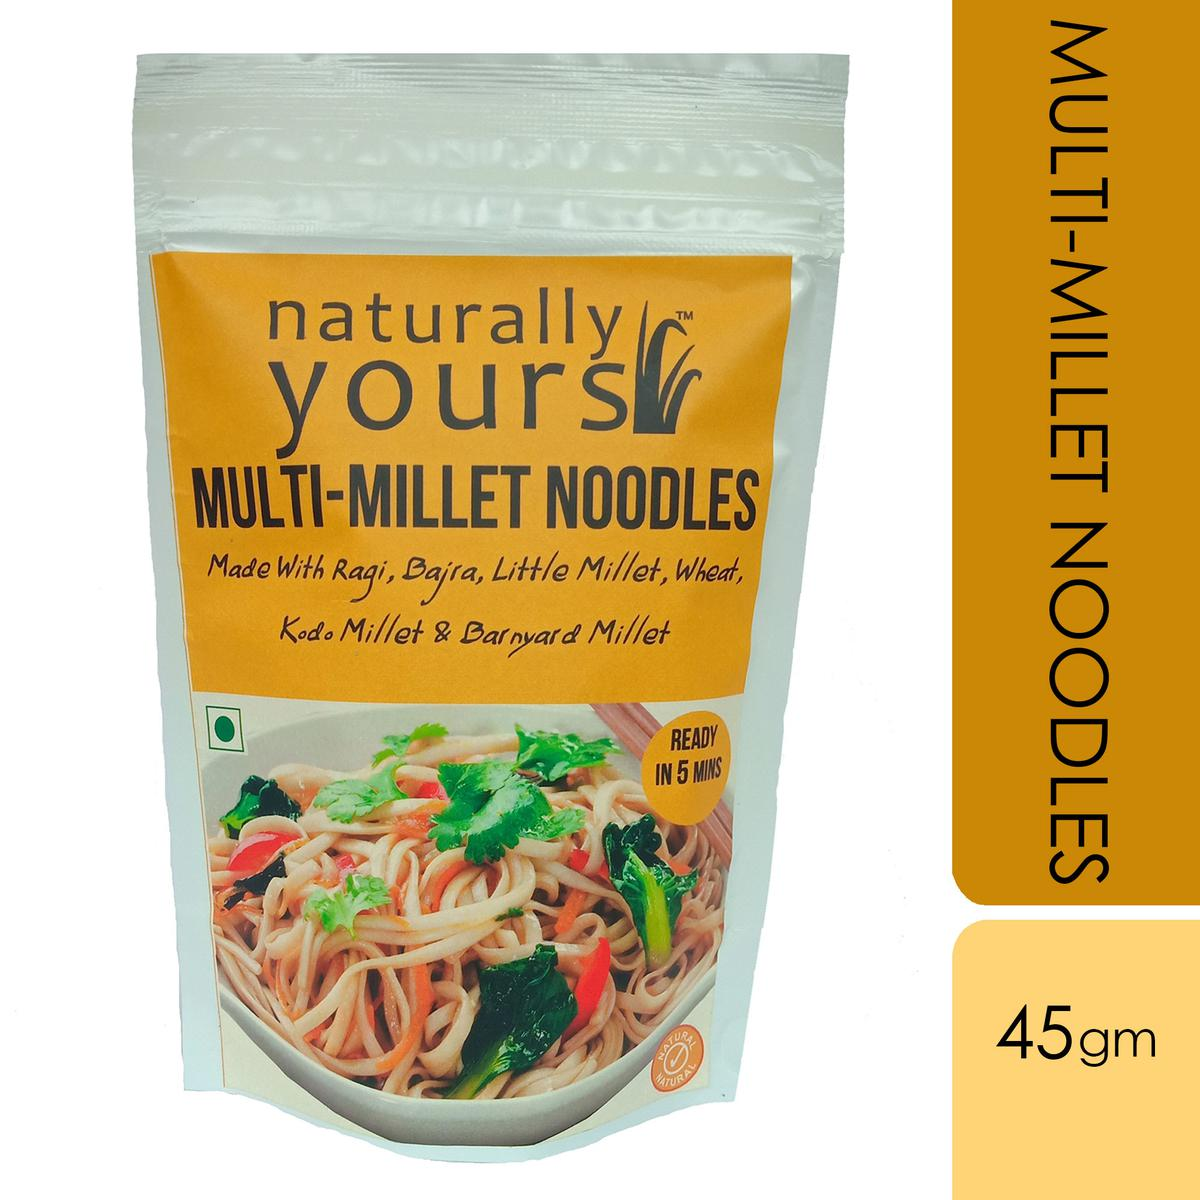 Naturally Yours Multi-Millet Noodles 45gms